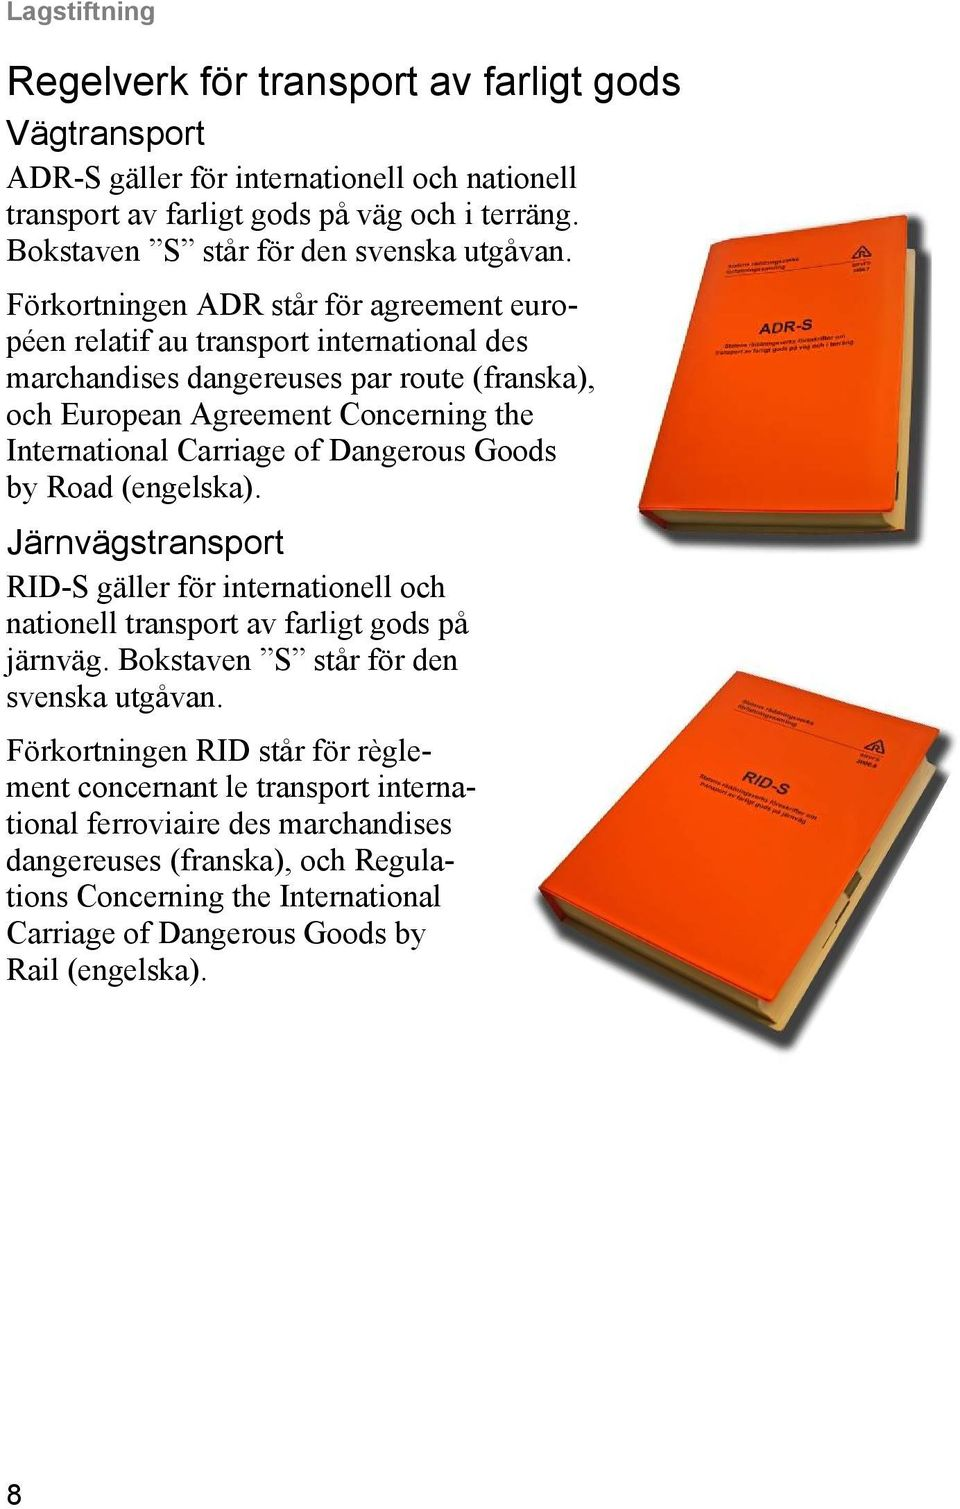 Förkortningen ADR står för agreement européen relatif au transport international des marchandises dangereuses par route (franska), och European Agreement Concerning the International Carriage of